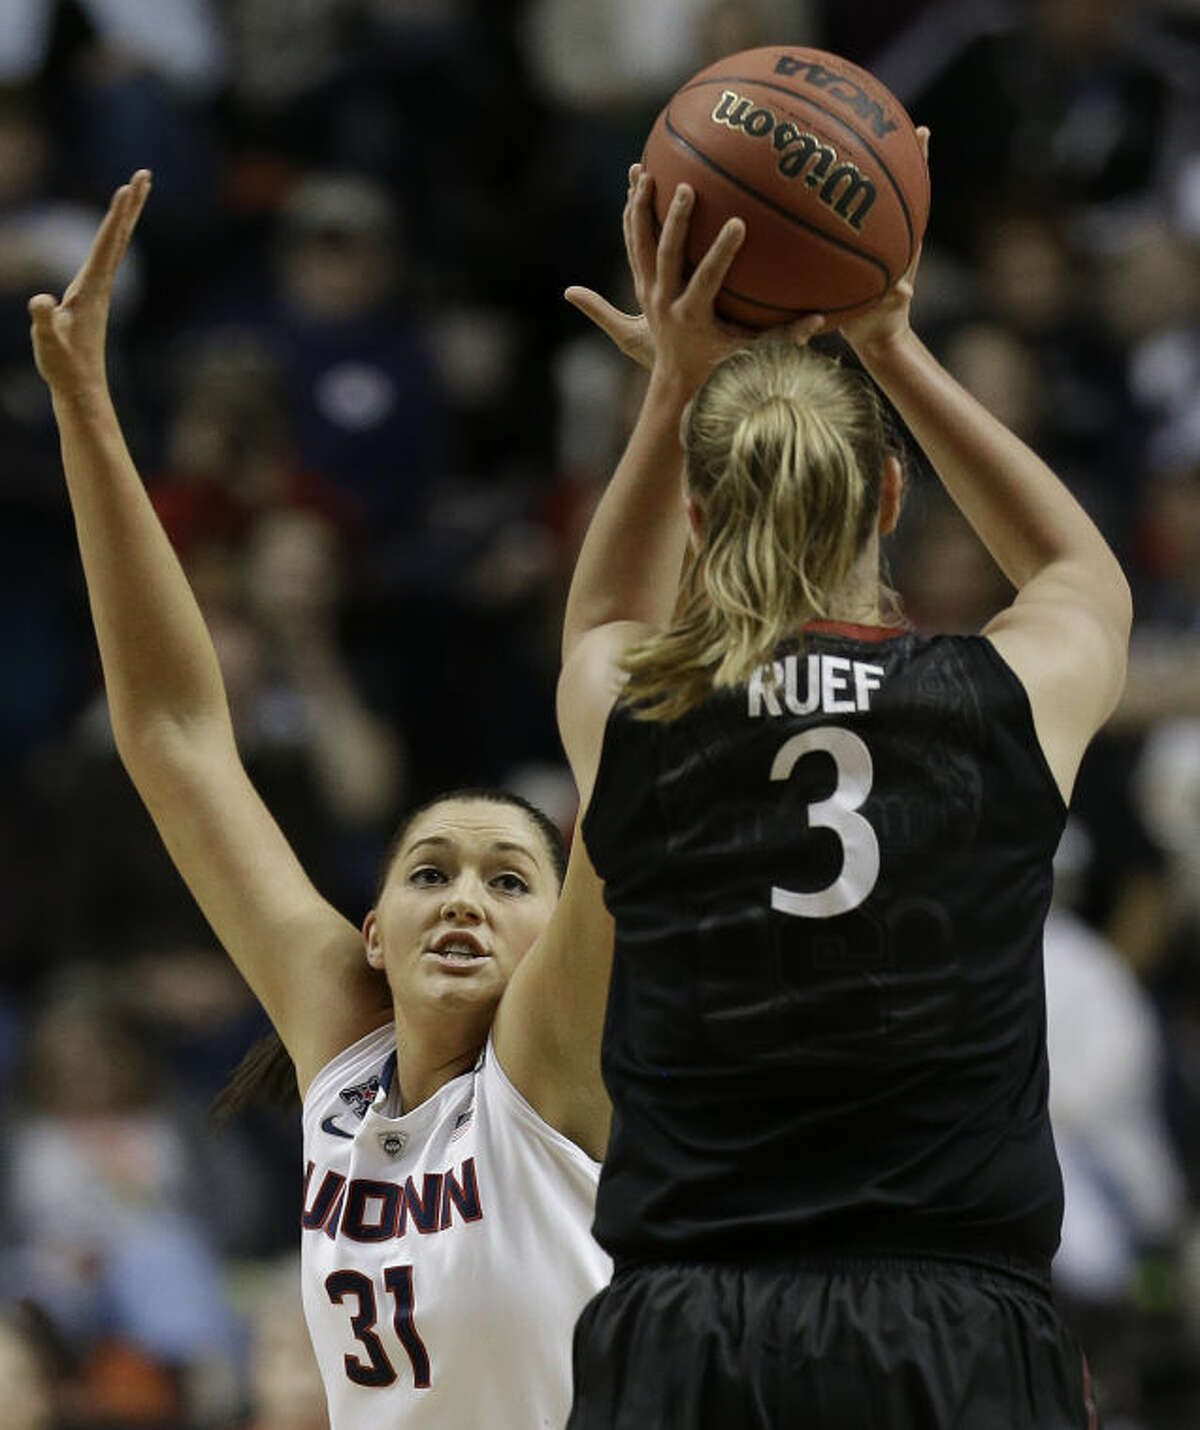 Stanford forward Mikaela Ruef (3) shoots against Connecticut center Stefanie Dolson (31) during the first half of the semifinal game in the Final Four of the NCAA women's college basketball tournament, Sunday, April 6, 2014, in Nashville, Tenn. (AP Photo/Mark Humphrey)